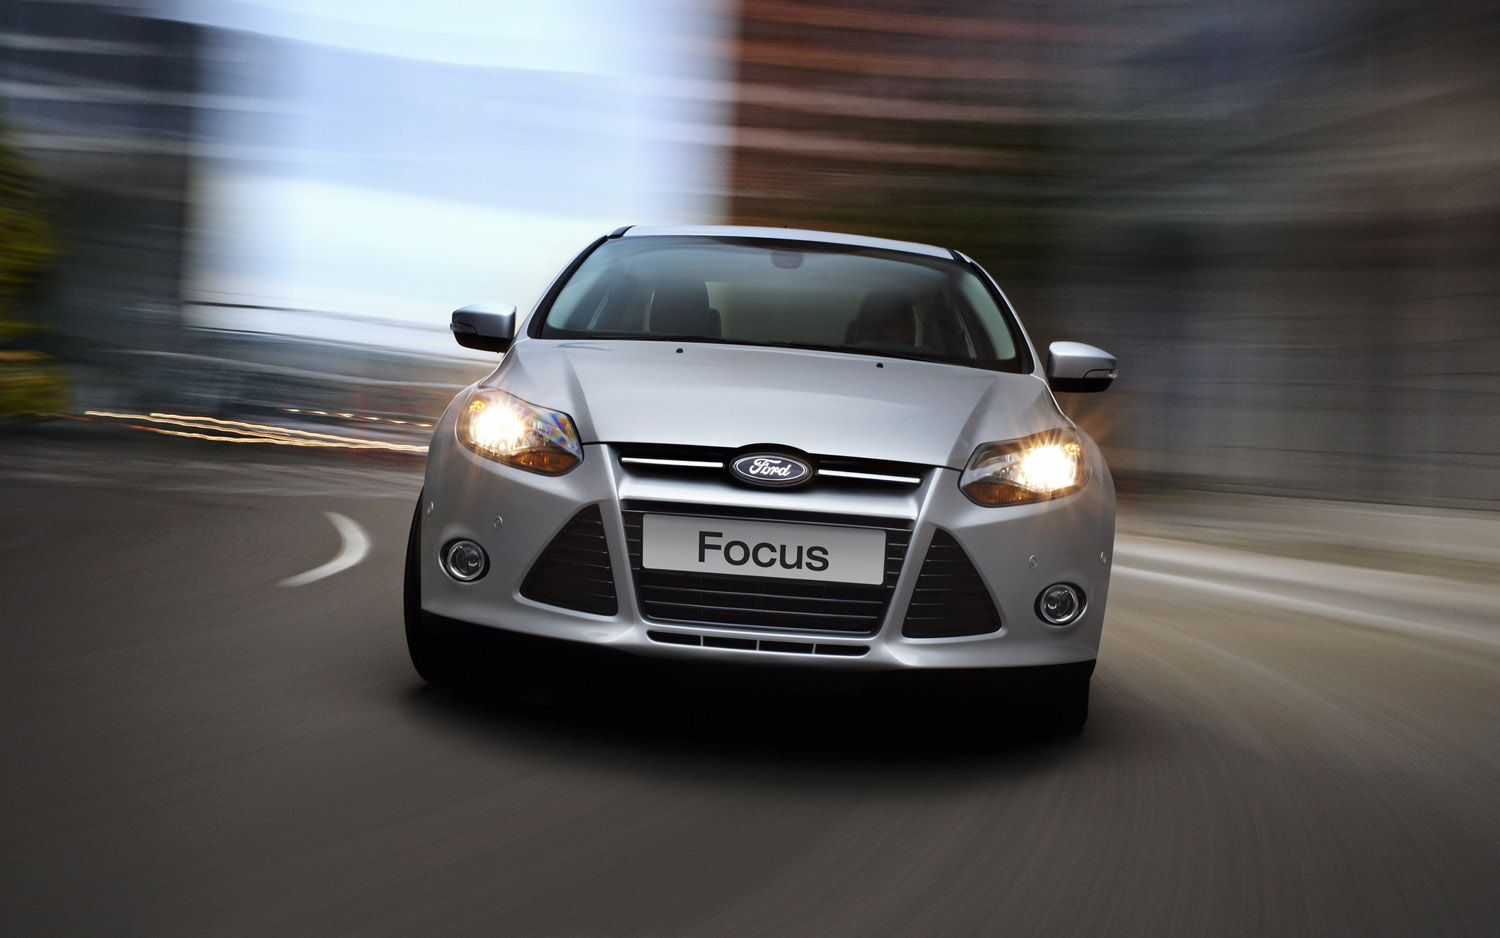 https://static.danhgiaxe.com/data/201433/2013-ford-focus-dau-xe_6161.jpg